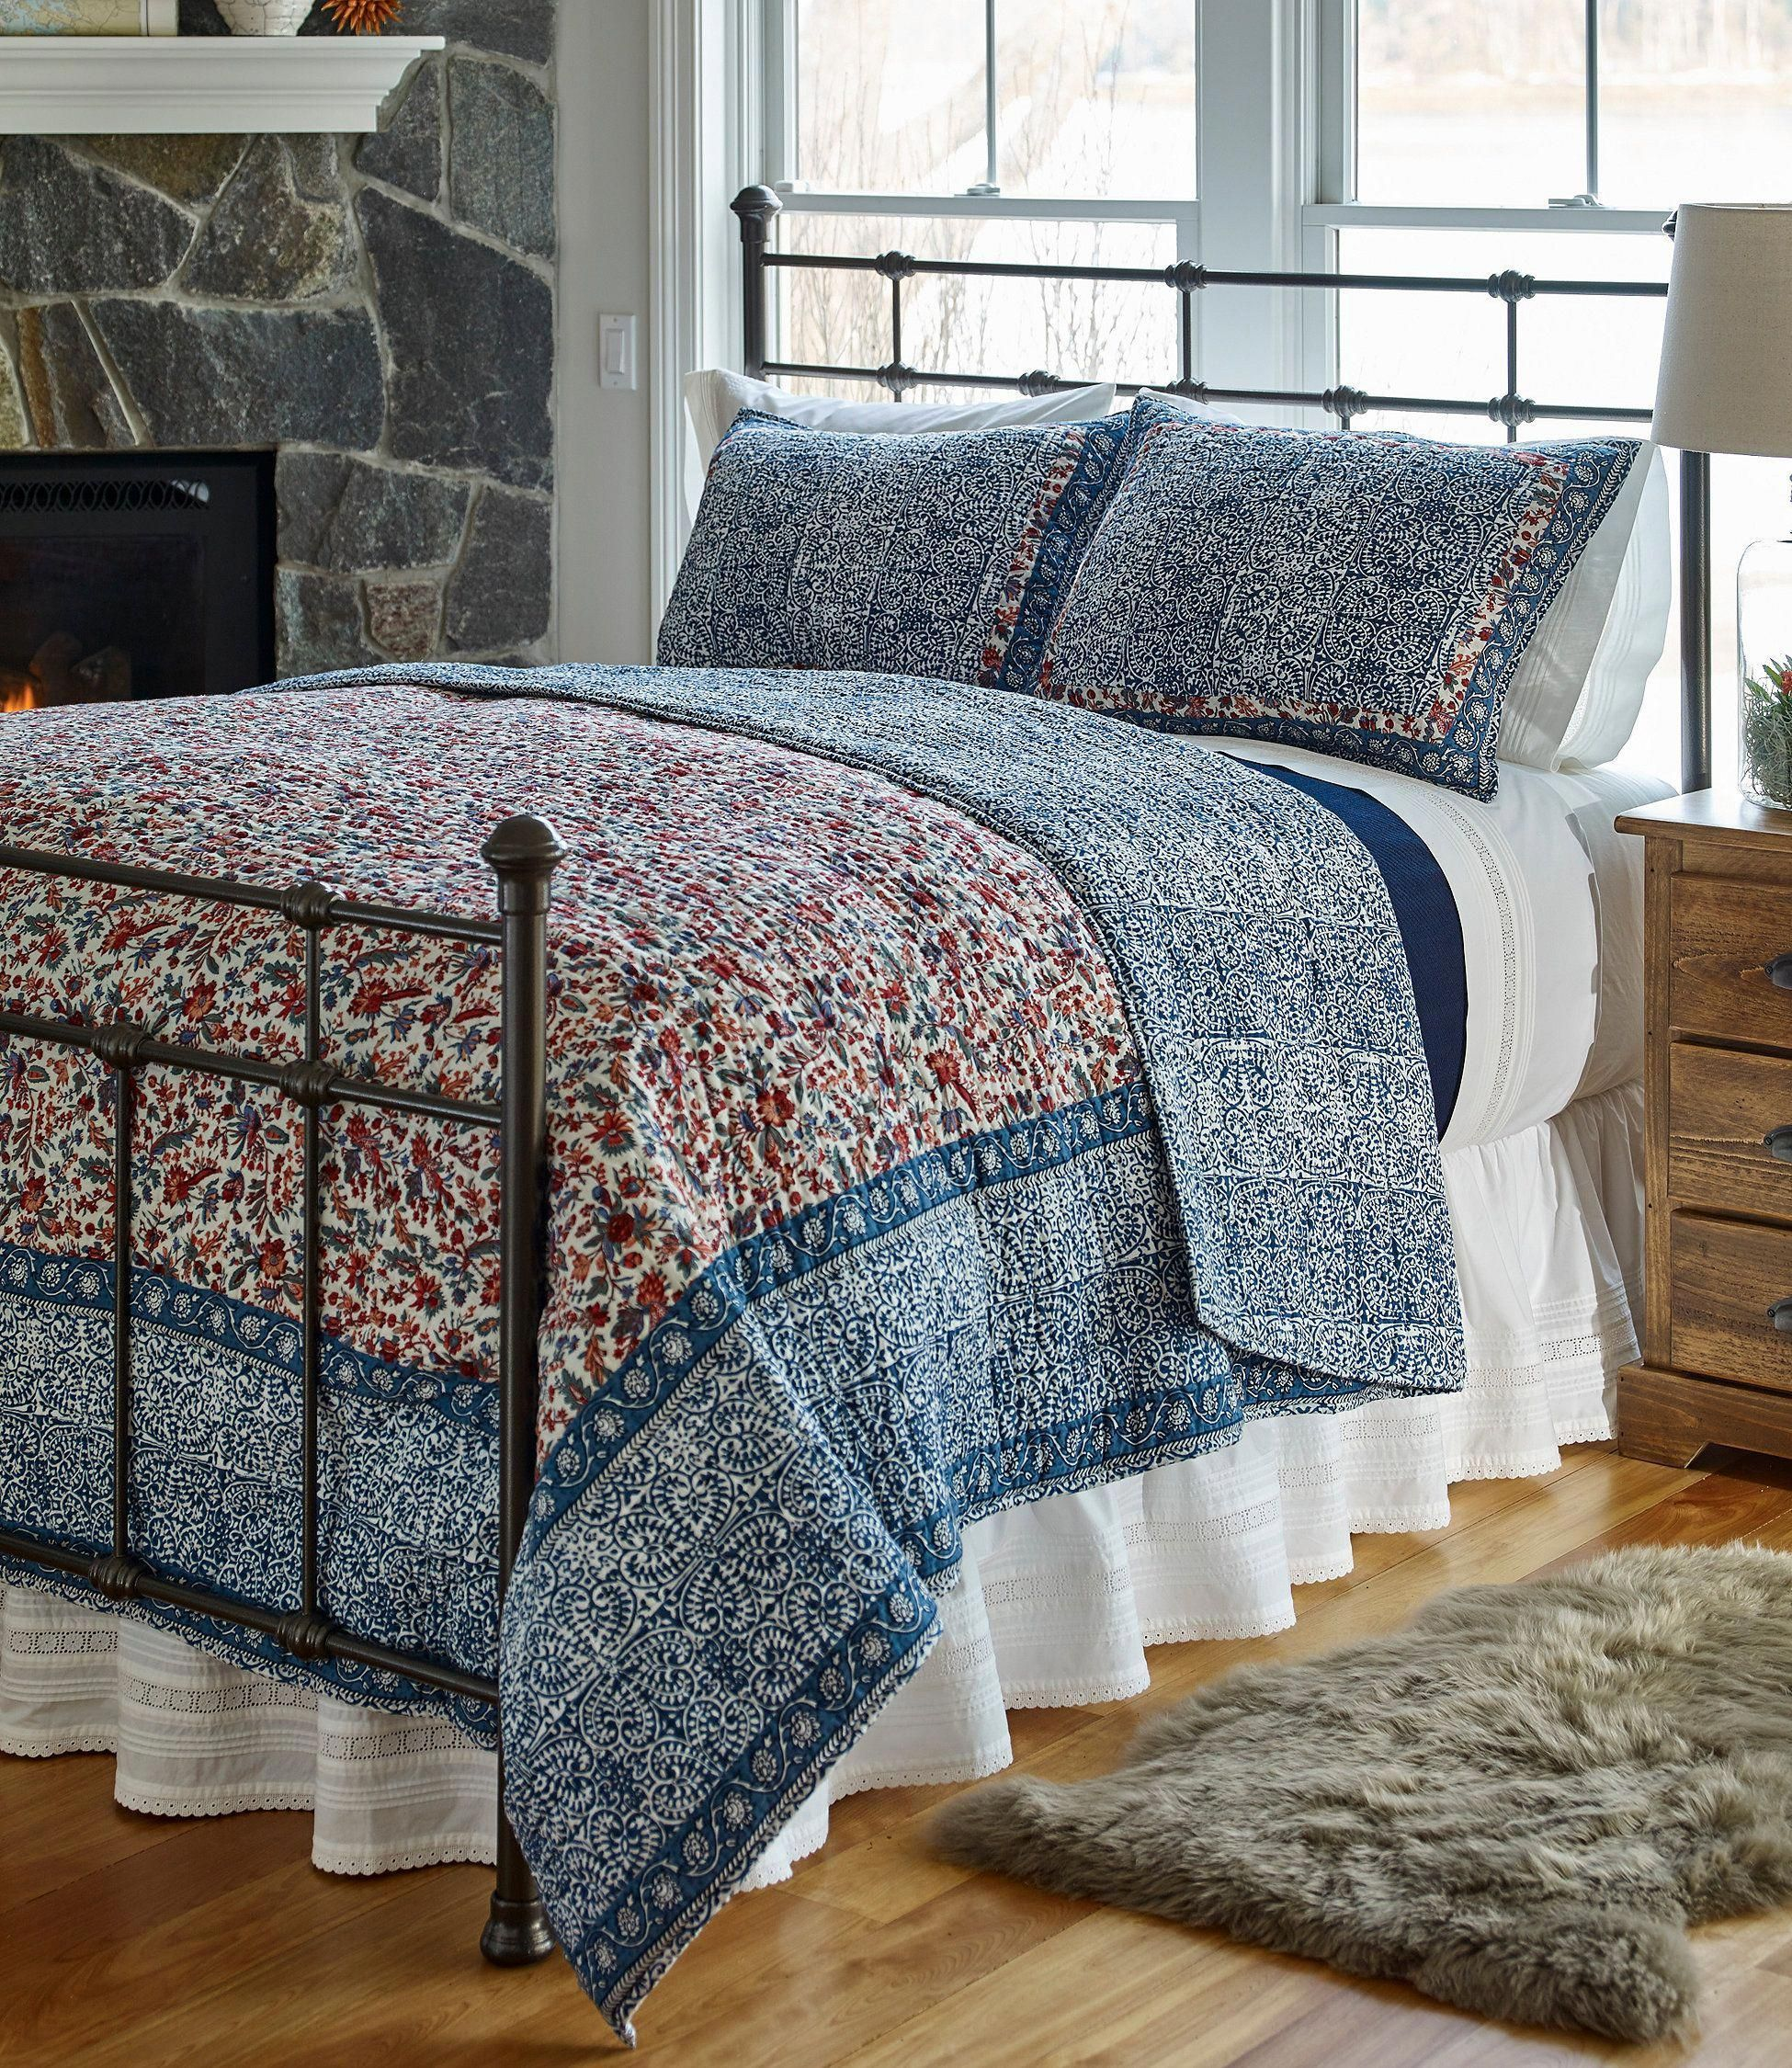 Second Hand Bed Sheets For Sale Product Id 6961436293 Exclusivebedlinenideas Home Floral Quilt Floral Quilt Bedding